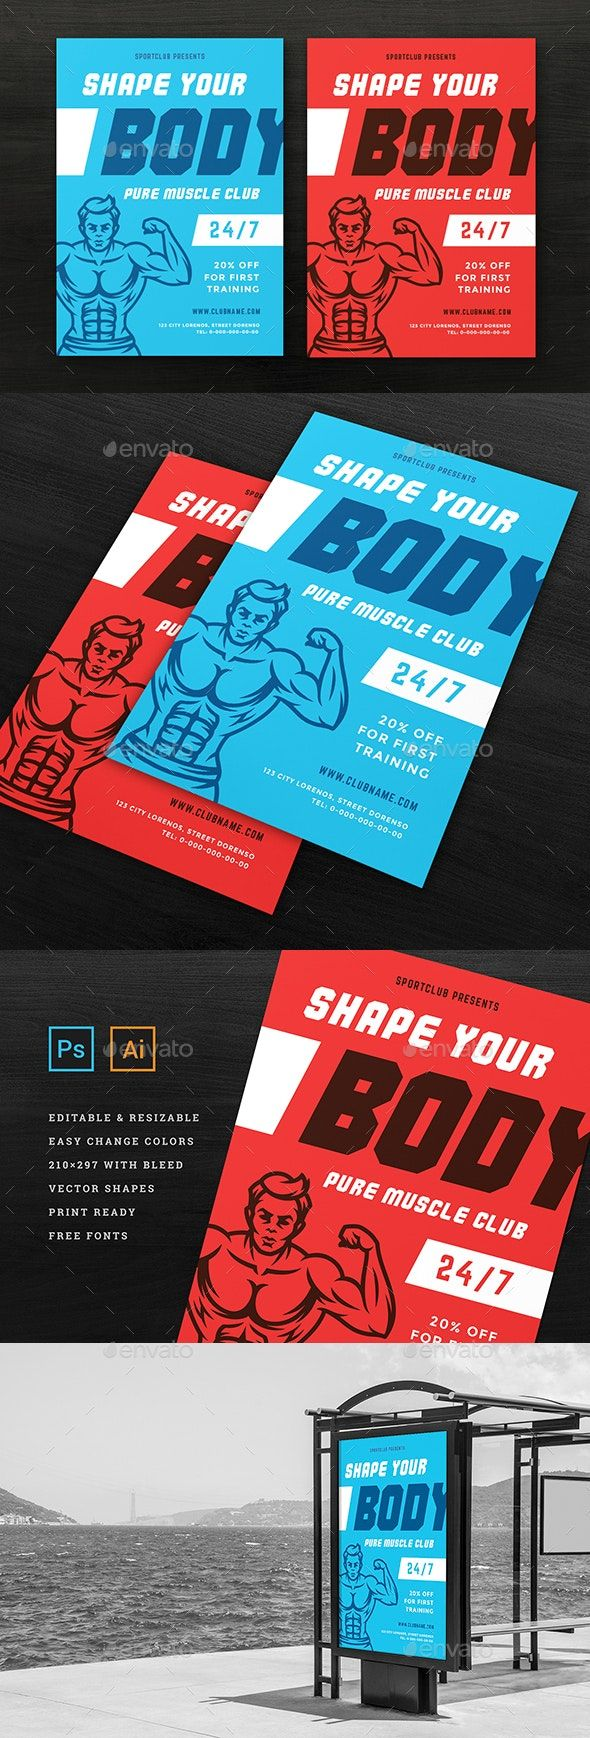 Fitness & Gym Sports Flyer Template #AD #Gym, #Aff, #amp, #Fitness, #Template